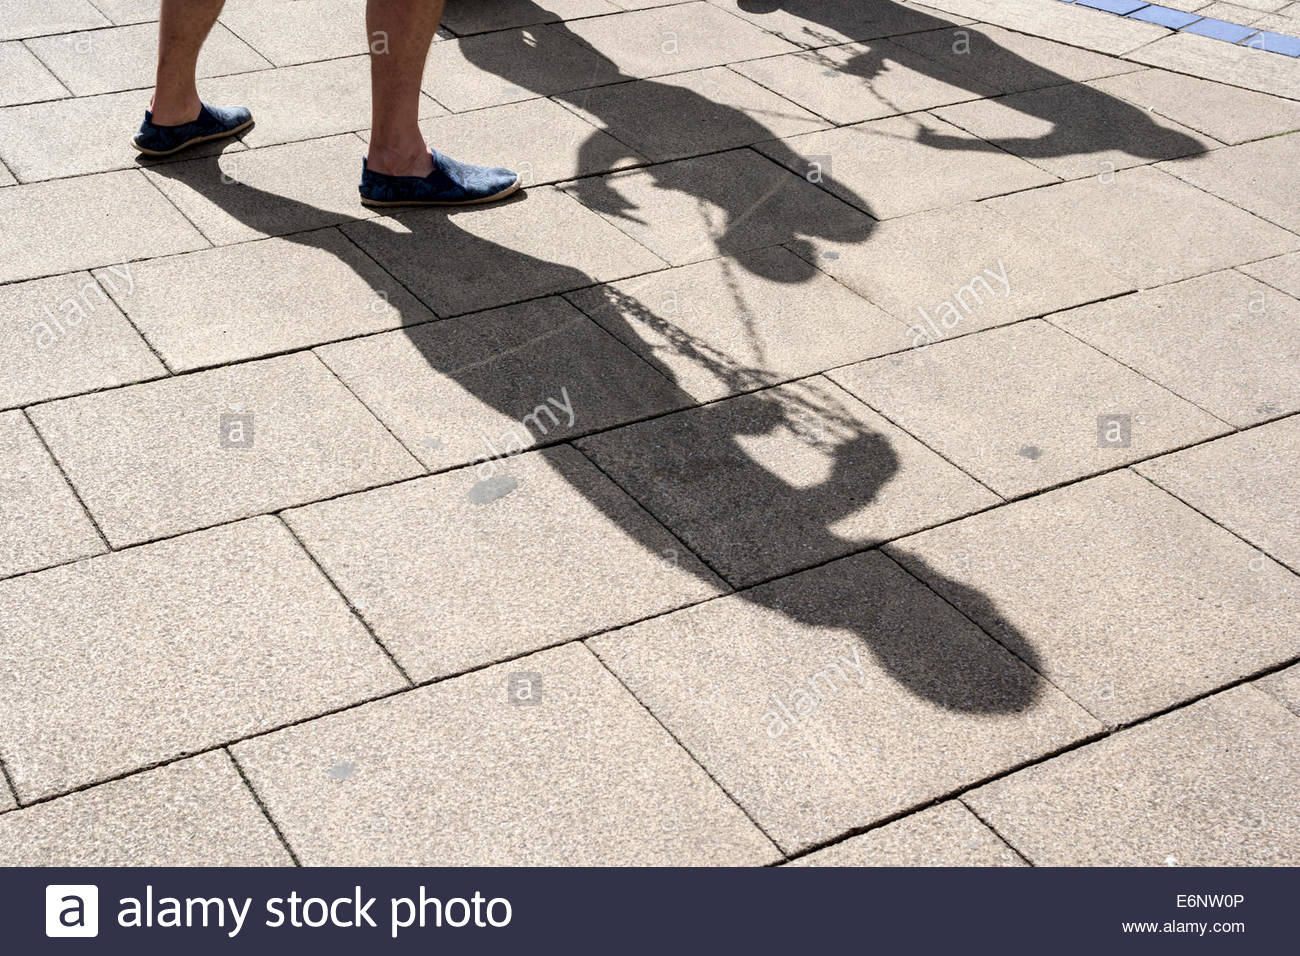 Shadows on a pavement.  Tied up in chains. - Stock Image